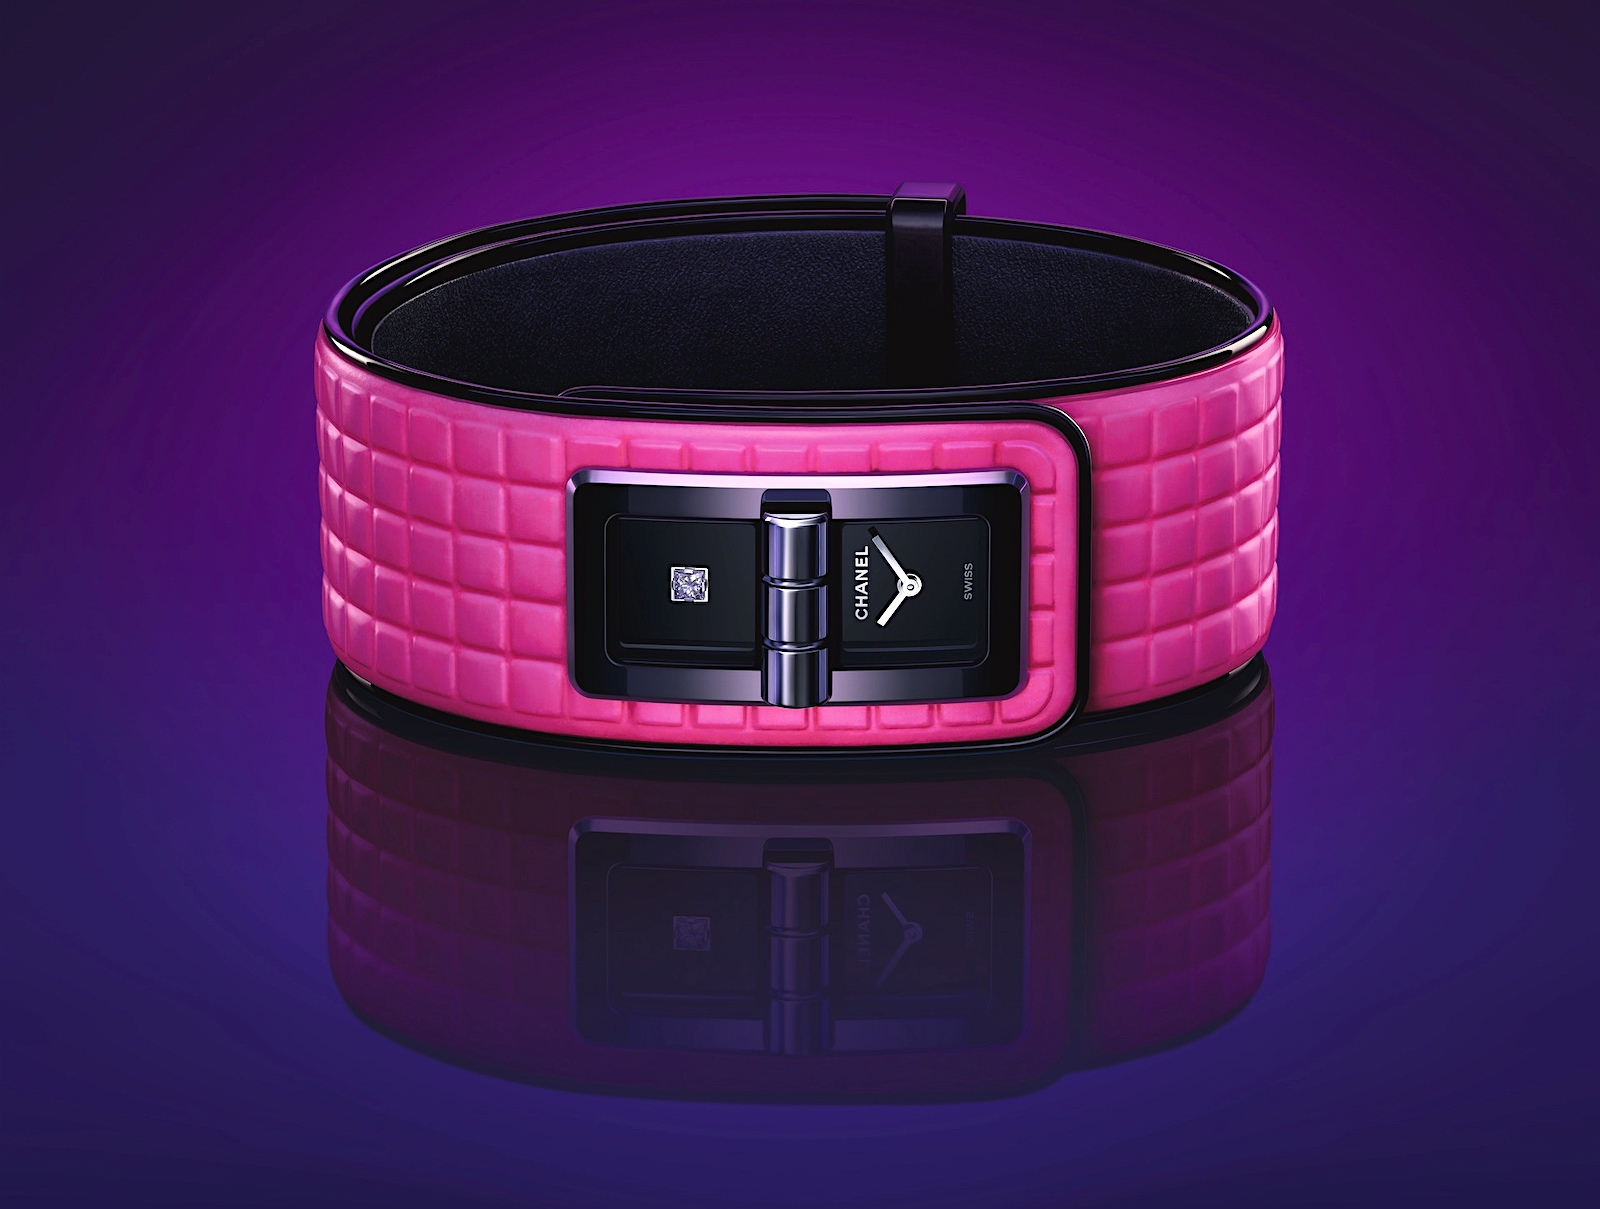 Chanel en Watches and Wonders 2021 - Code Coco electro